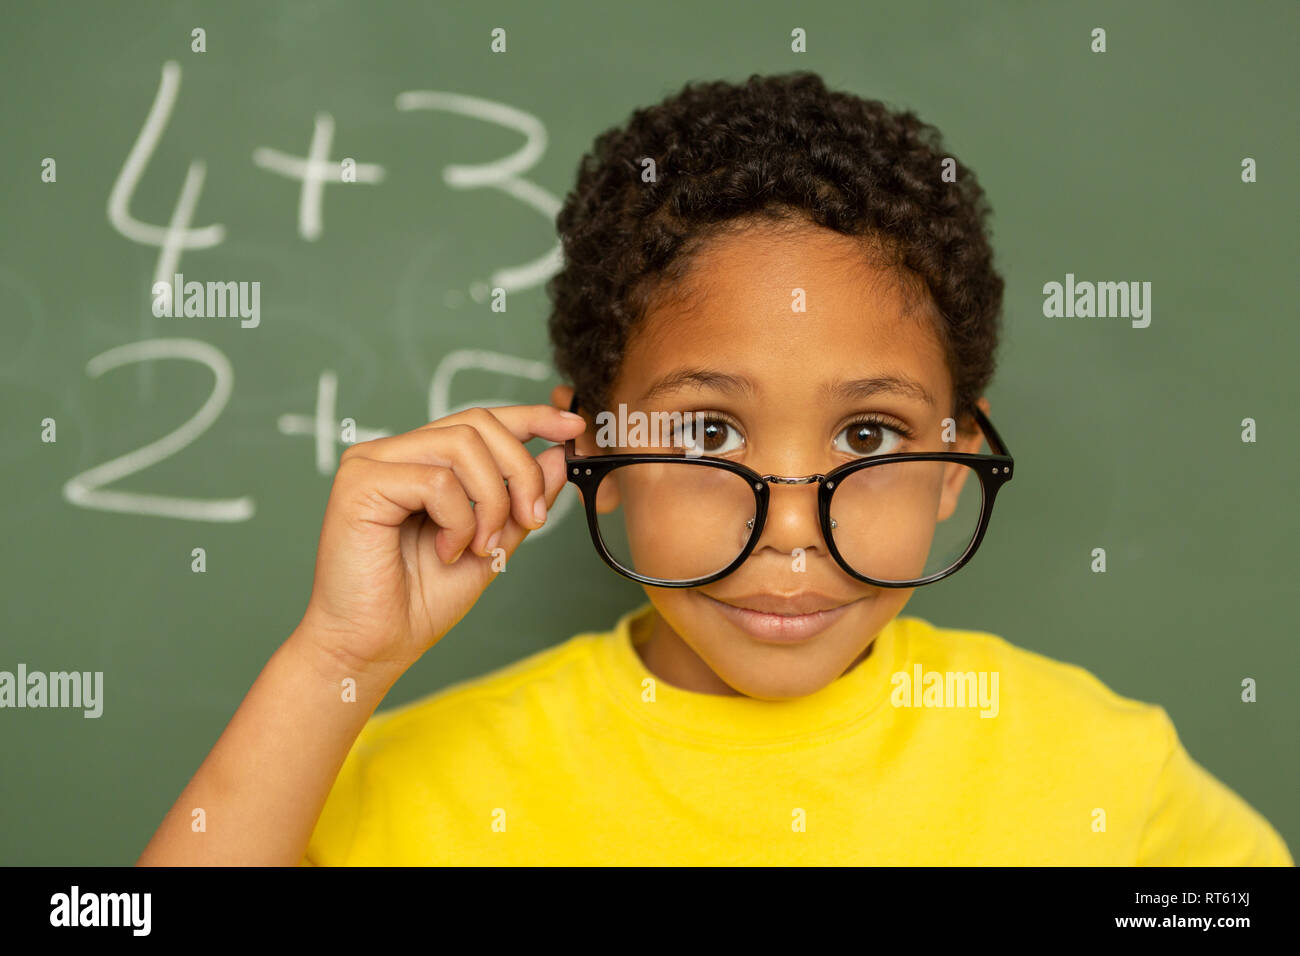 Happy schoolboy looking over spectacle against greenboard in a classroom - Stock Image